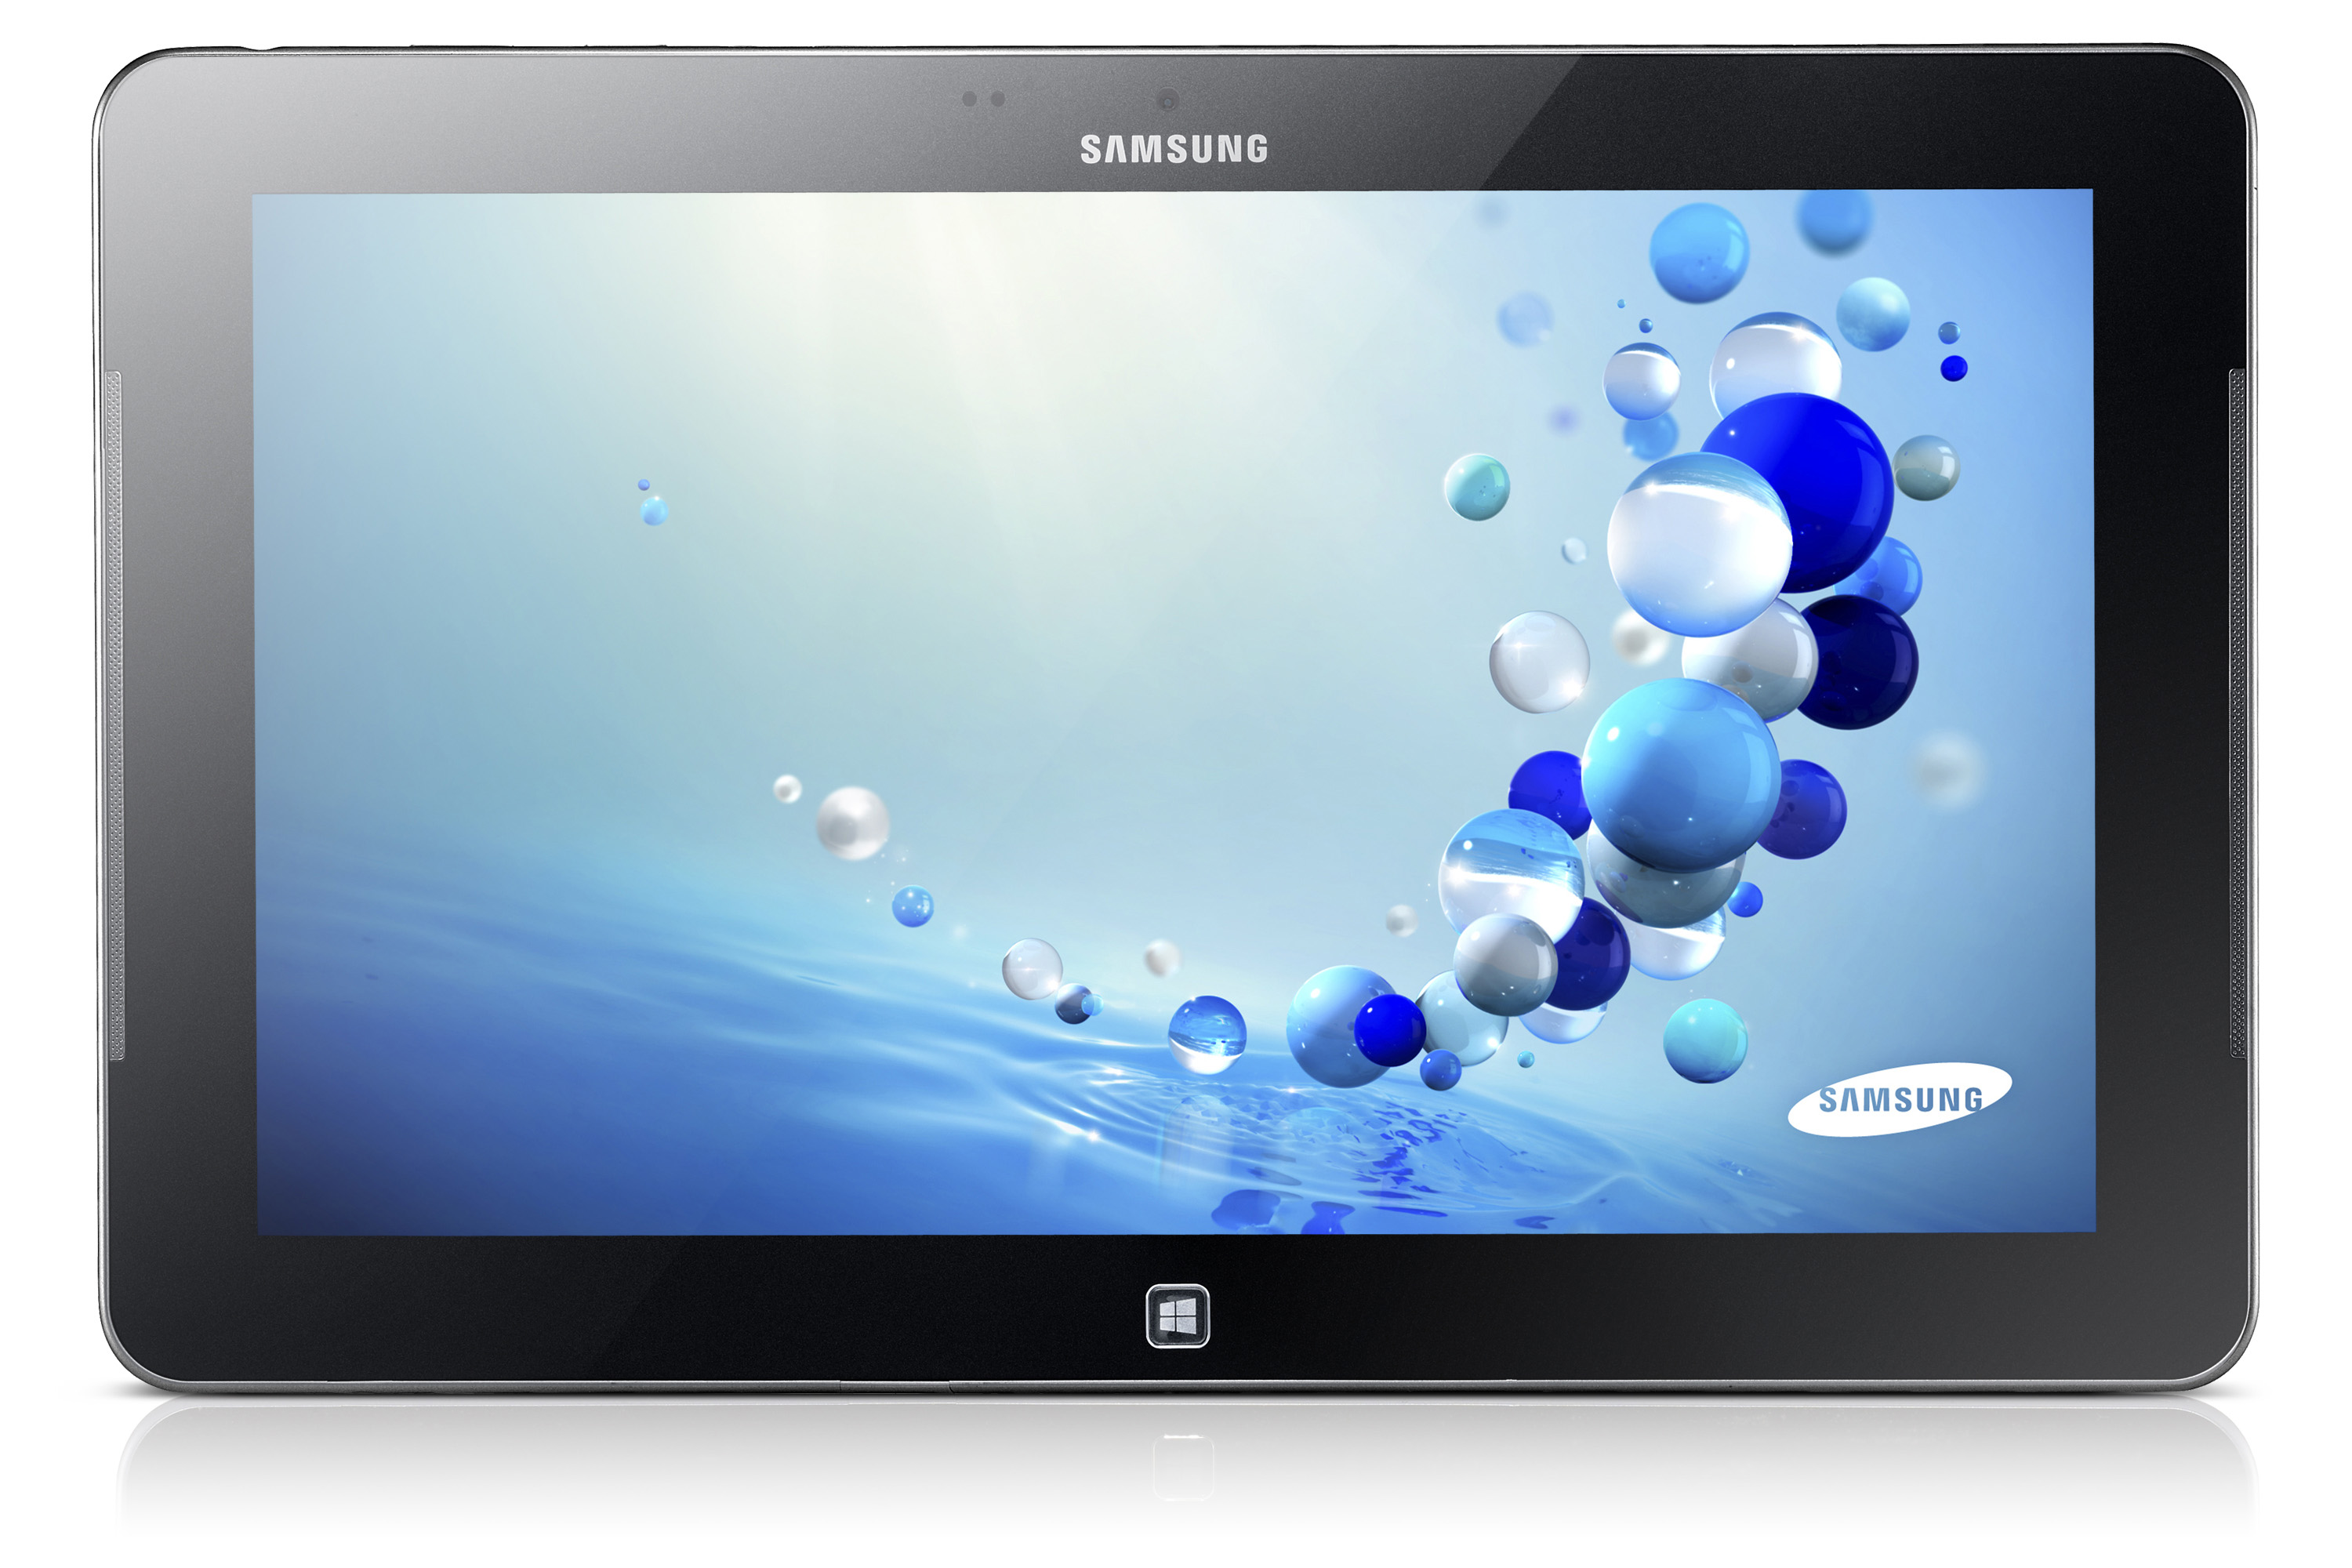 Samsung ATIV Smart PC 500T Wifi